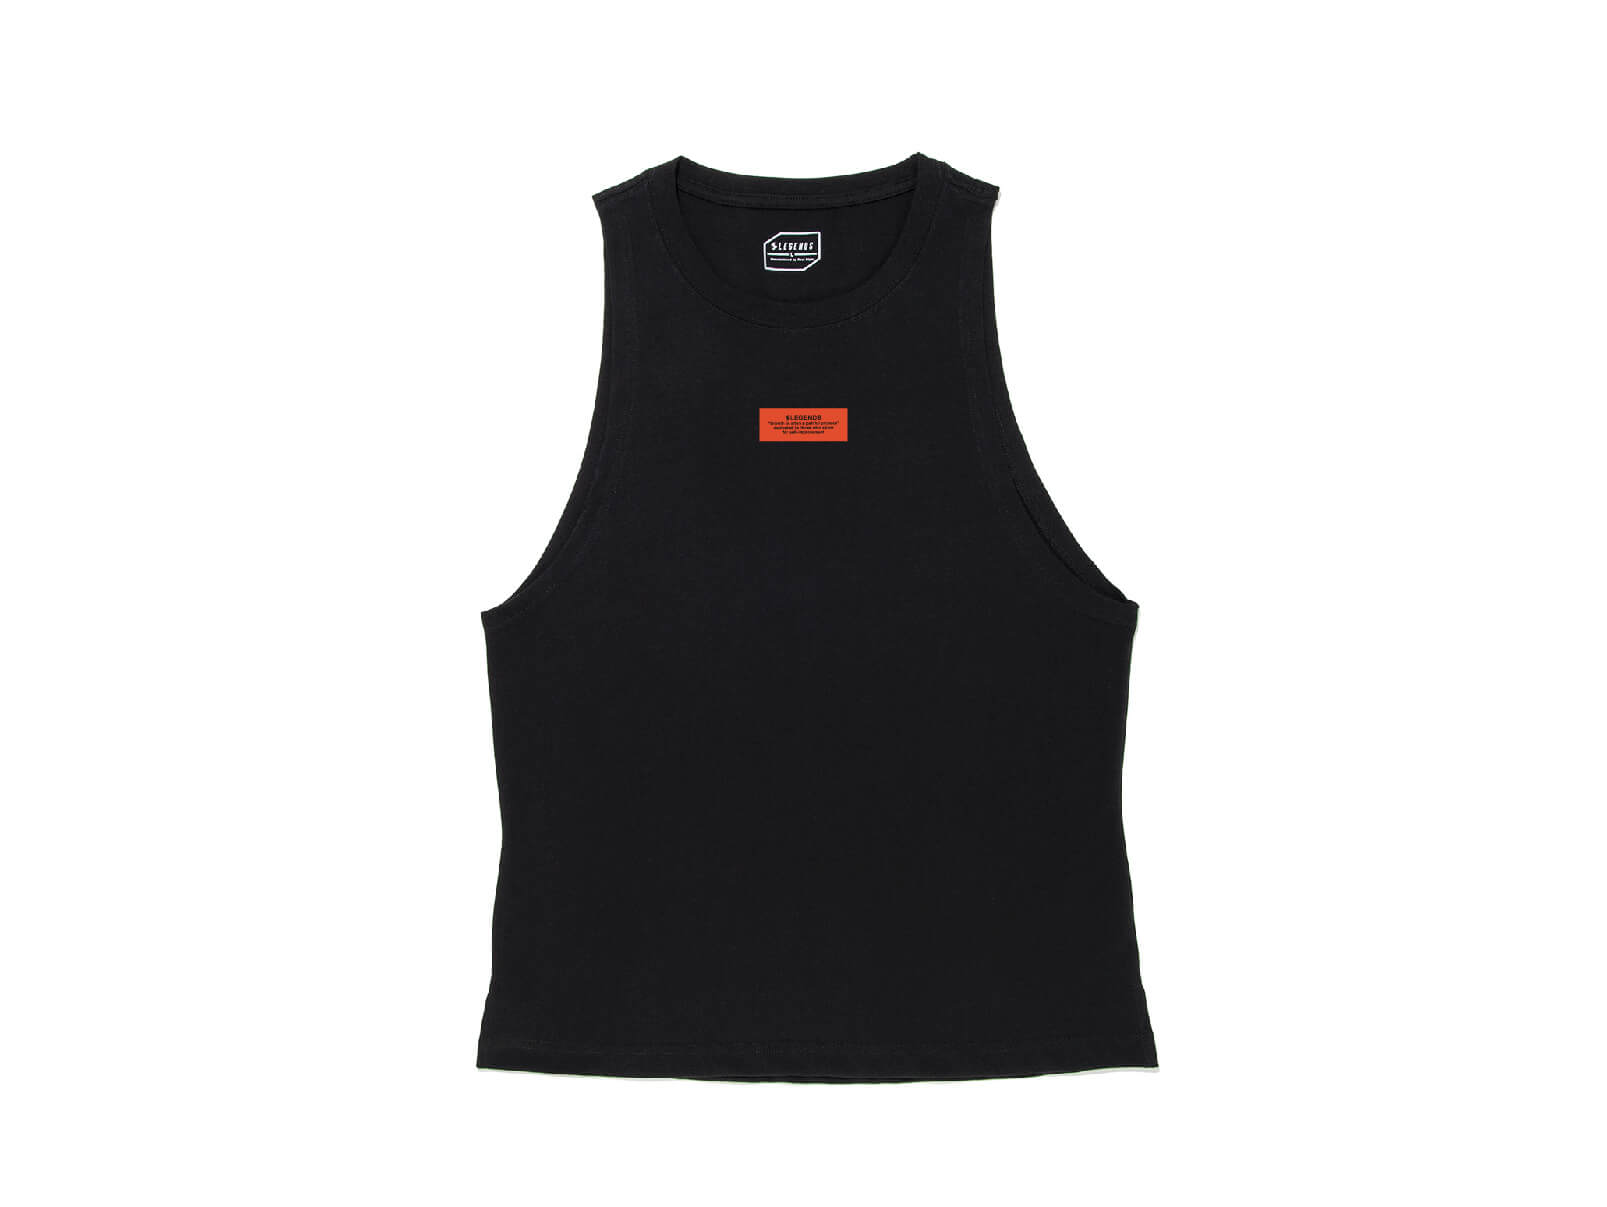 COTTON TICKET GRAPHIC WIDE ARMHOLE TANK TOP